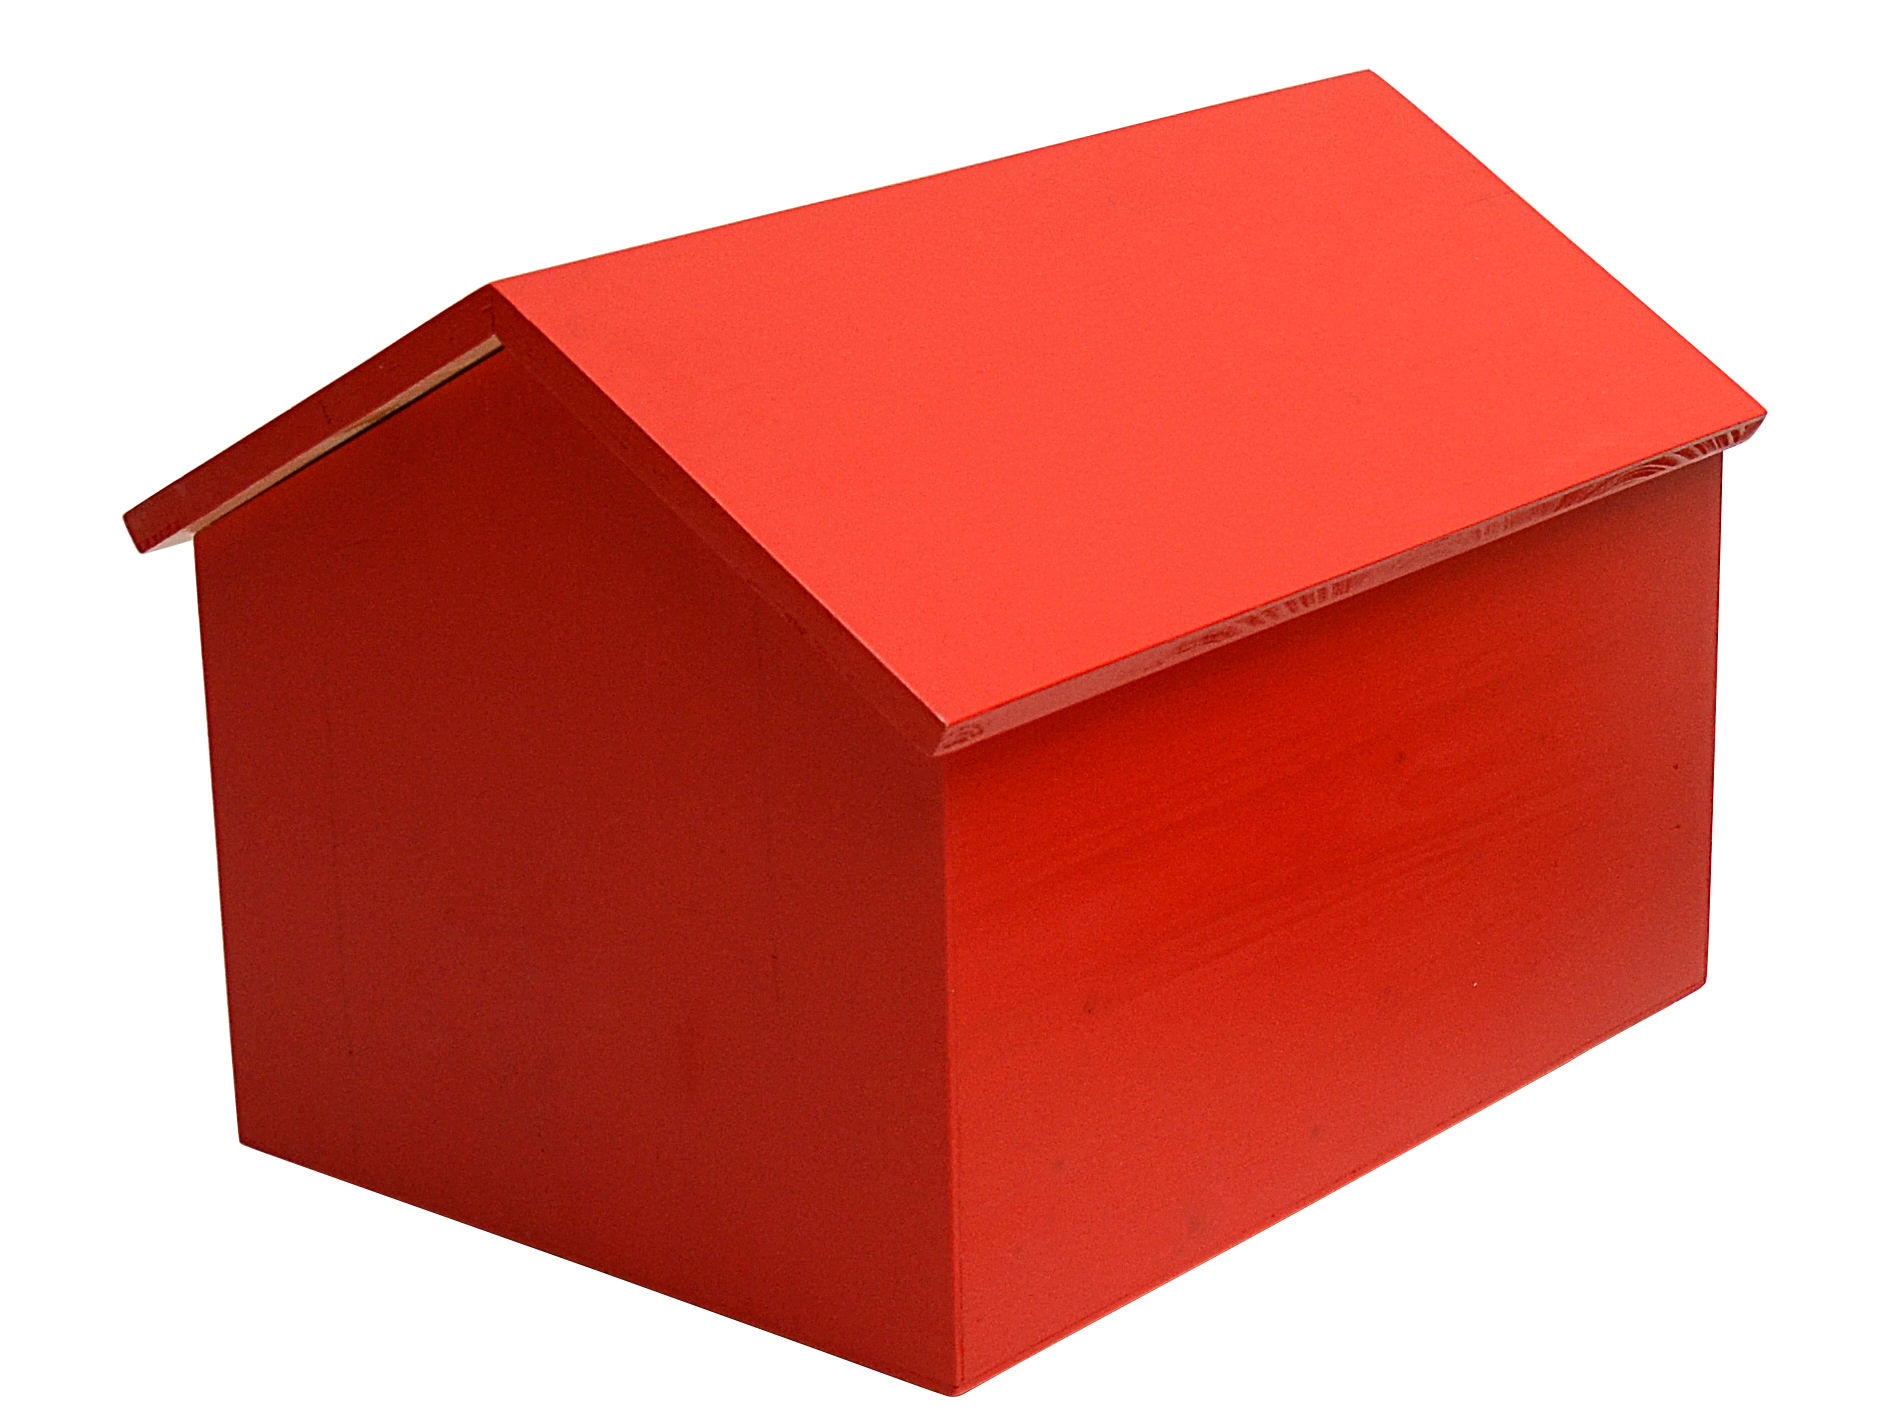 Furniture - Kids Furniture - Maison Box by Compagnie - Red - Painted MDF